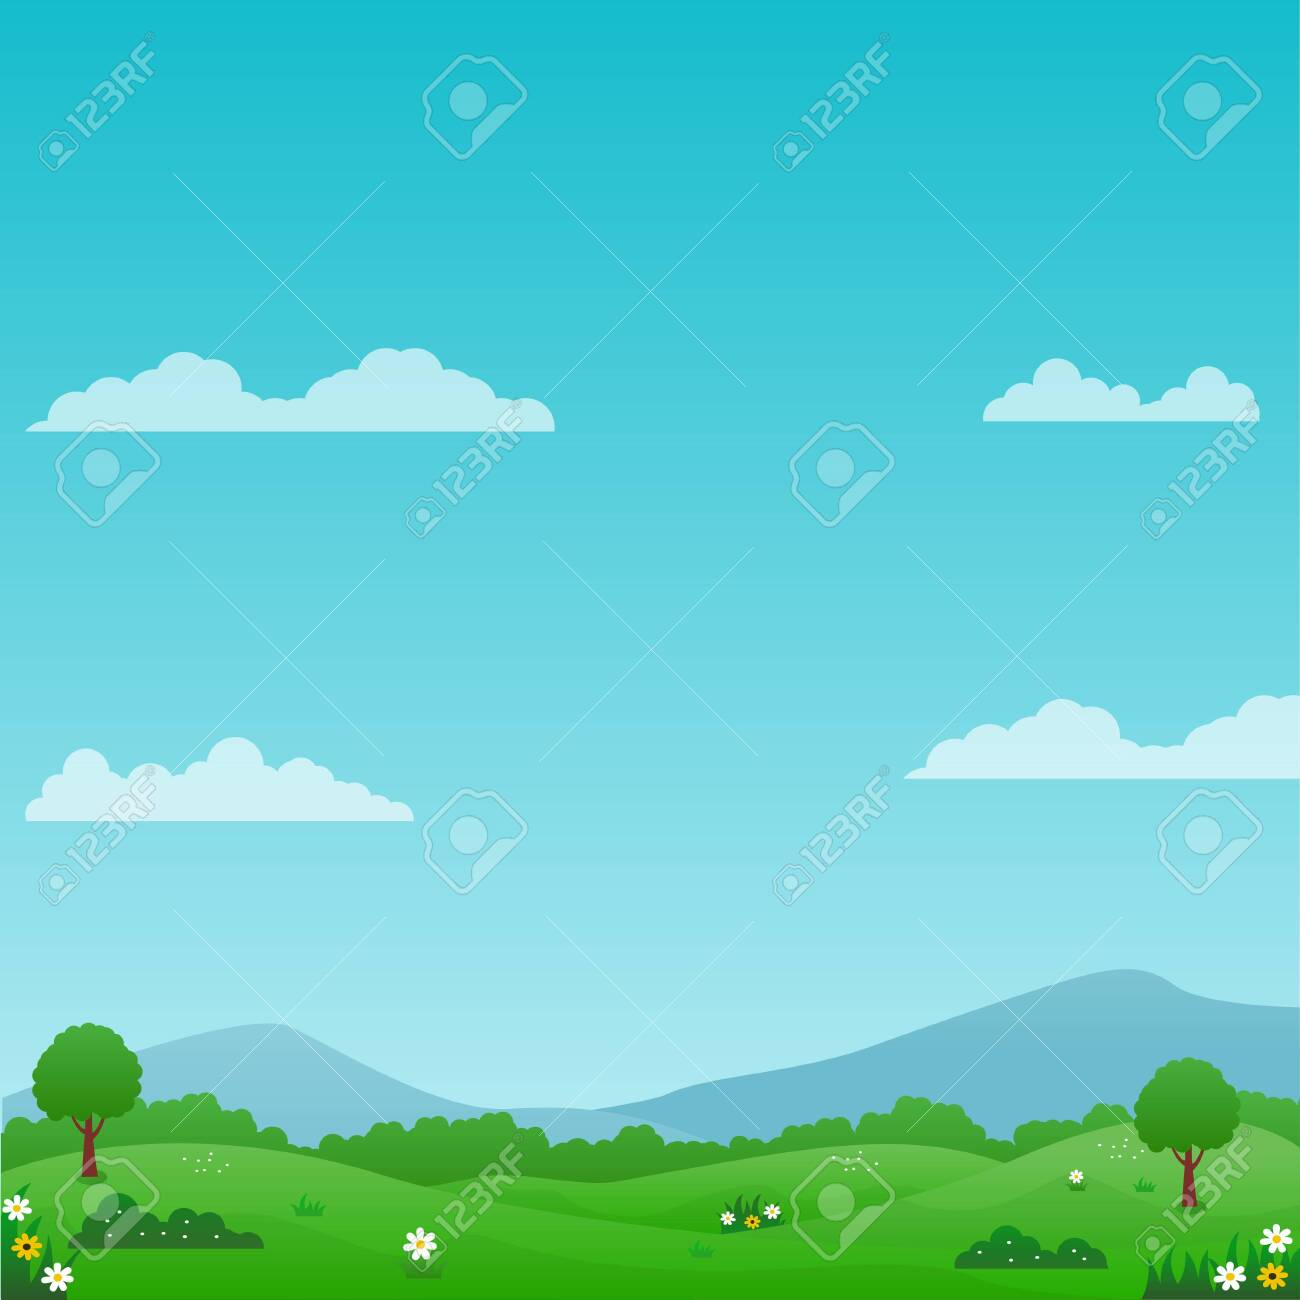 Beautiful nature landscape vector illustration with bright sky, green meadow and flowers suitable for summer background or kids background - 143071103